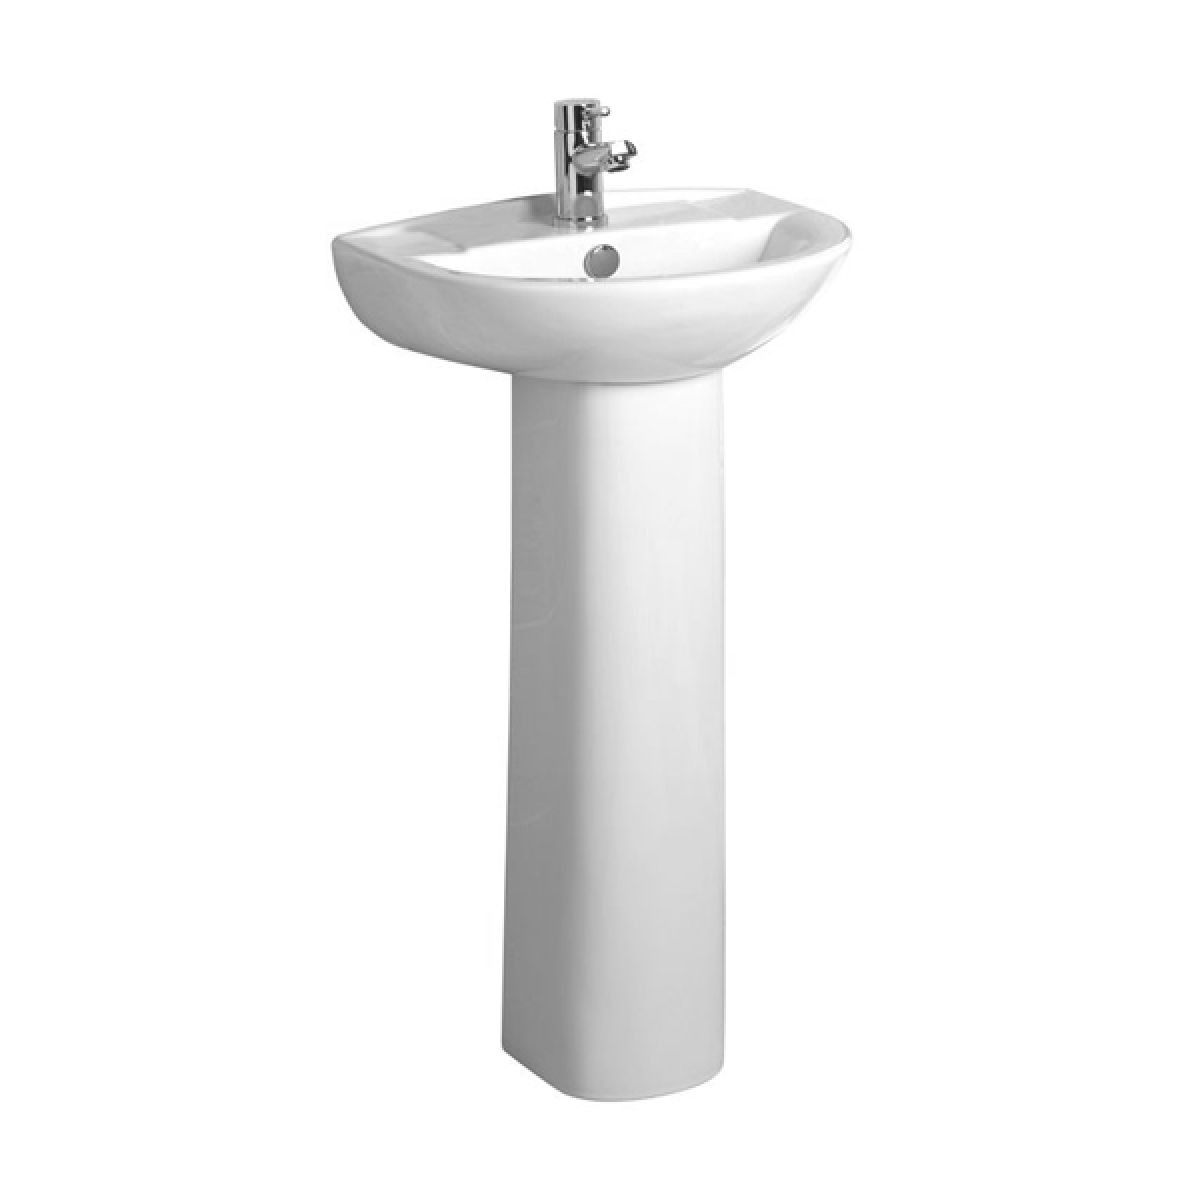 Tavistock Micra Basin and Pedestal 450mm